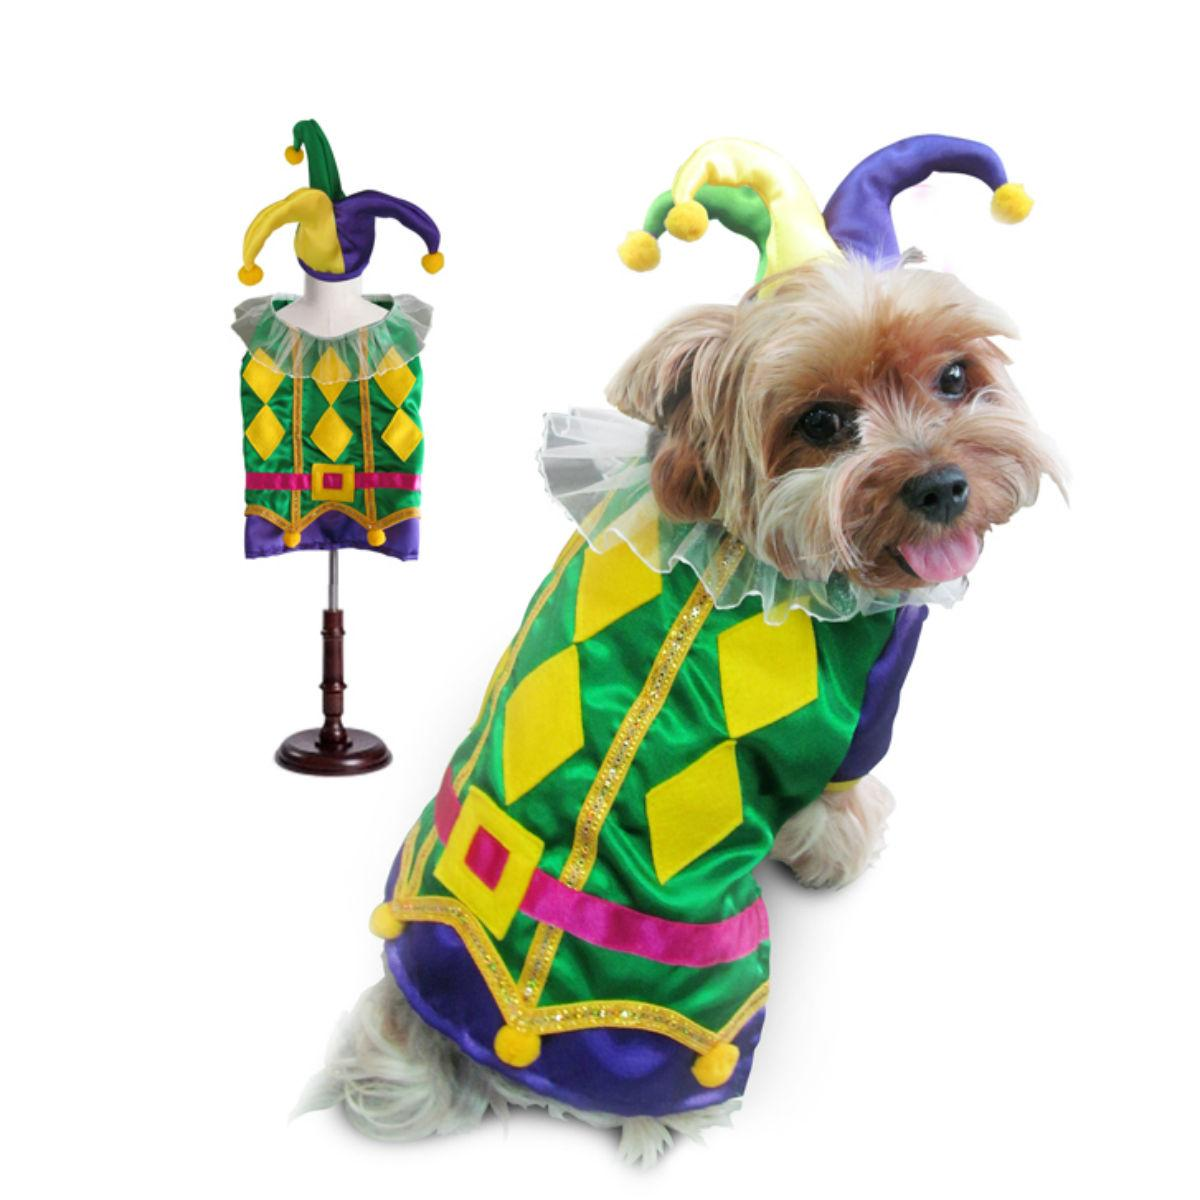 Harlequin Mardi Gras Dog Costume